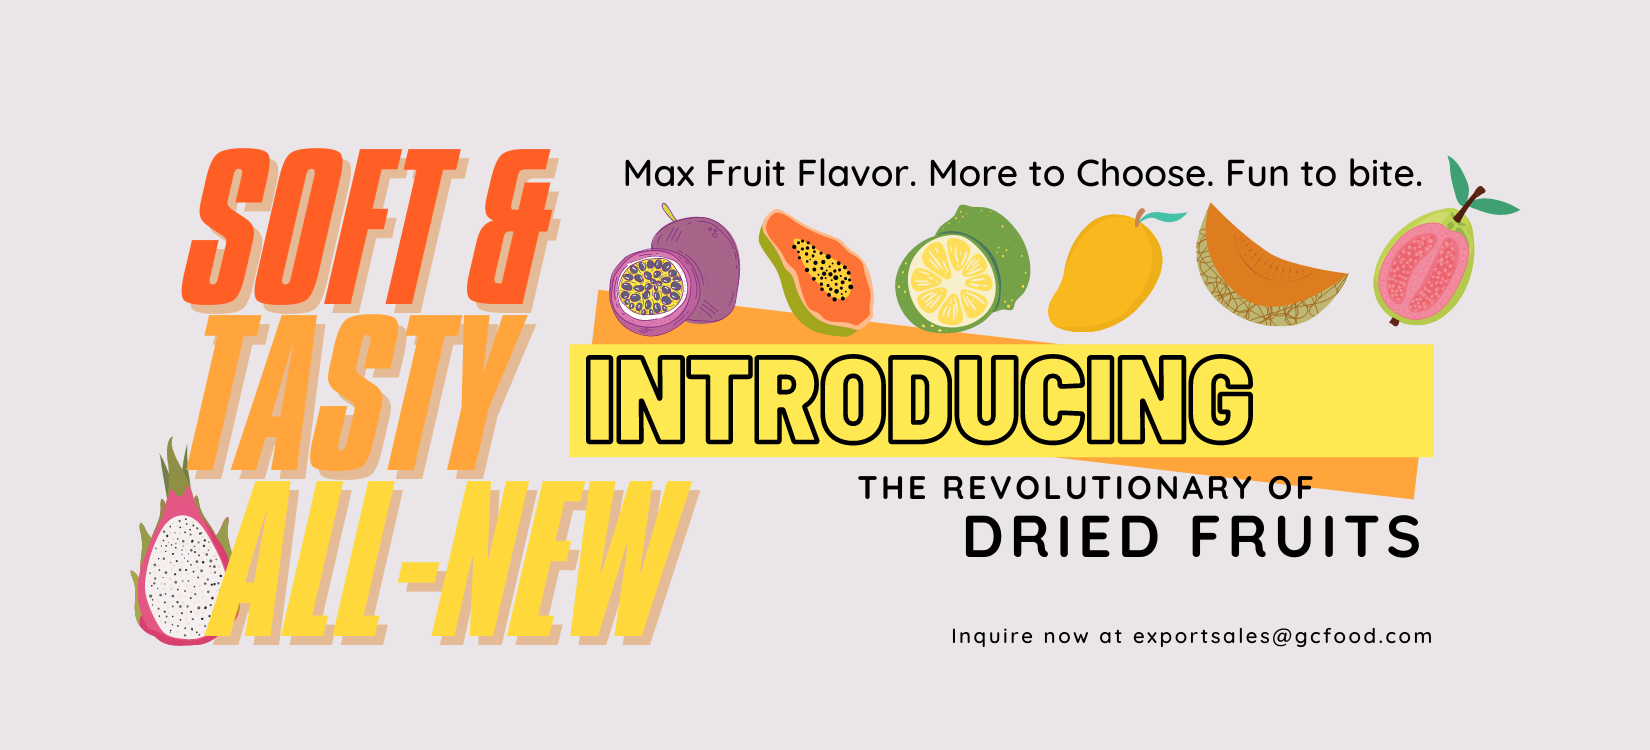 Soft Dried Fruit - All-new technique. Max Fruit Flavor. Low Sugar. More to Choose. Fun to Bite.